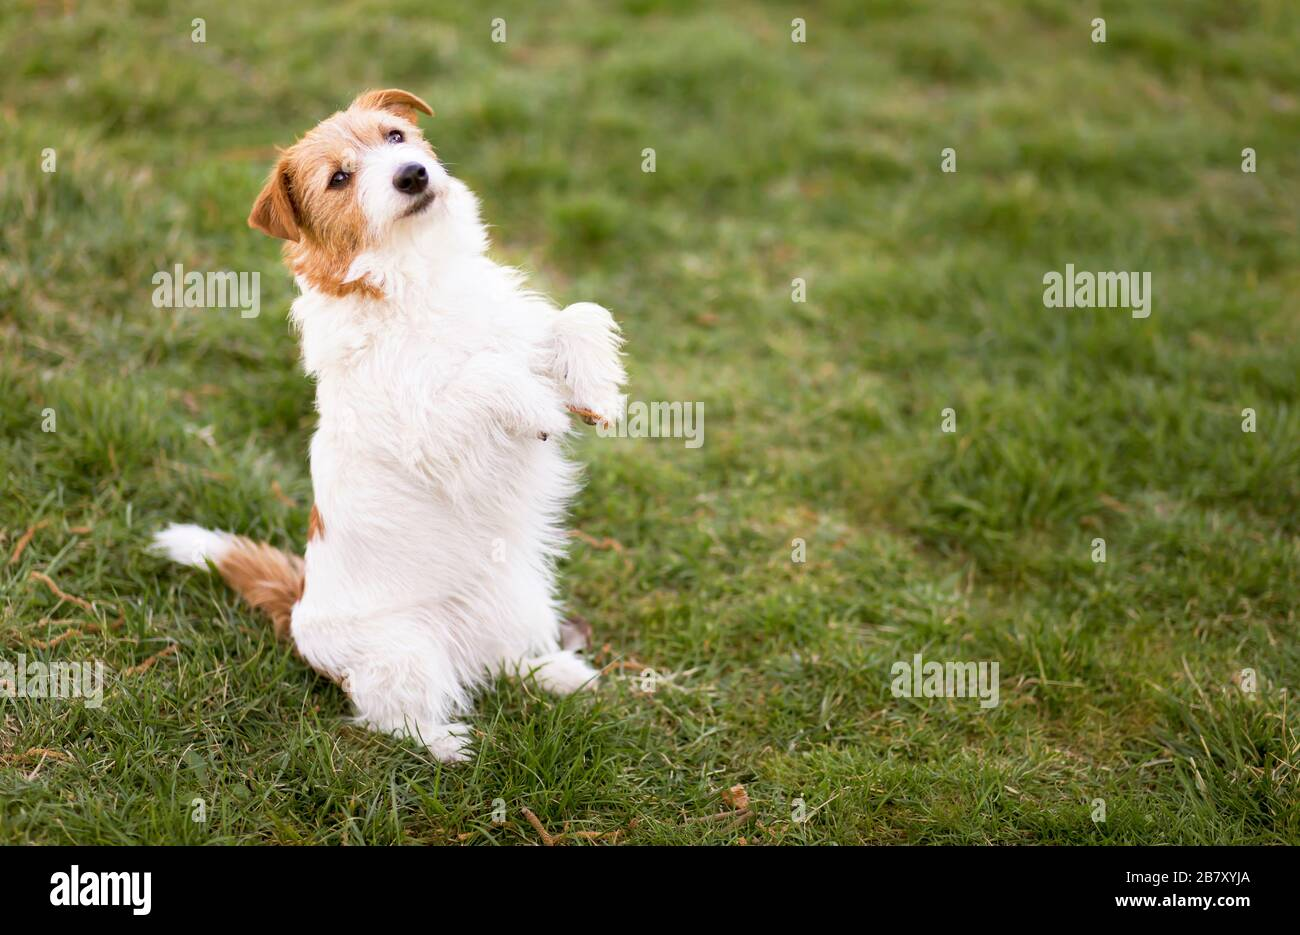 Small Cute Funny Smiling Obedient Dog Puppy Sitting In The Grass Pet Training Obedience Concept Stock Photo Alamy